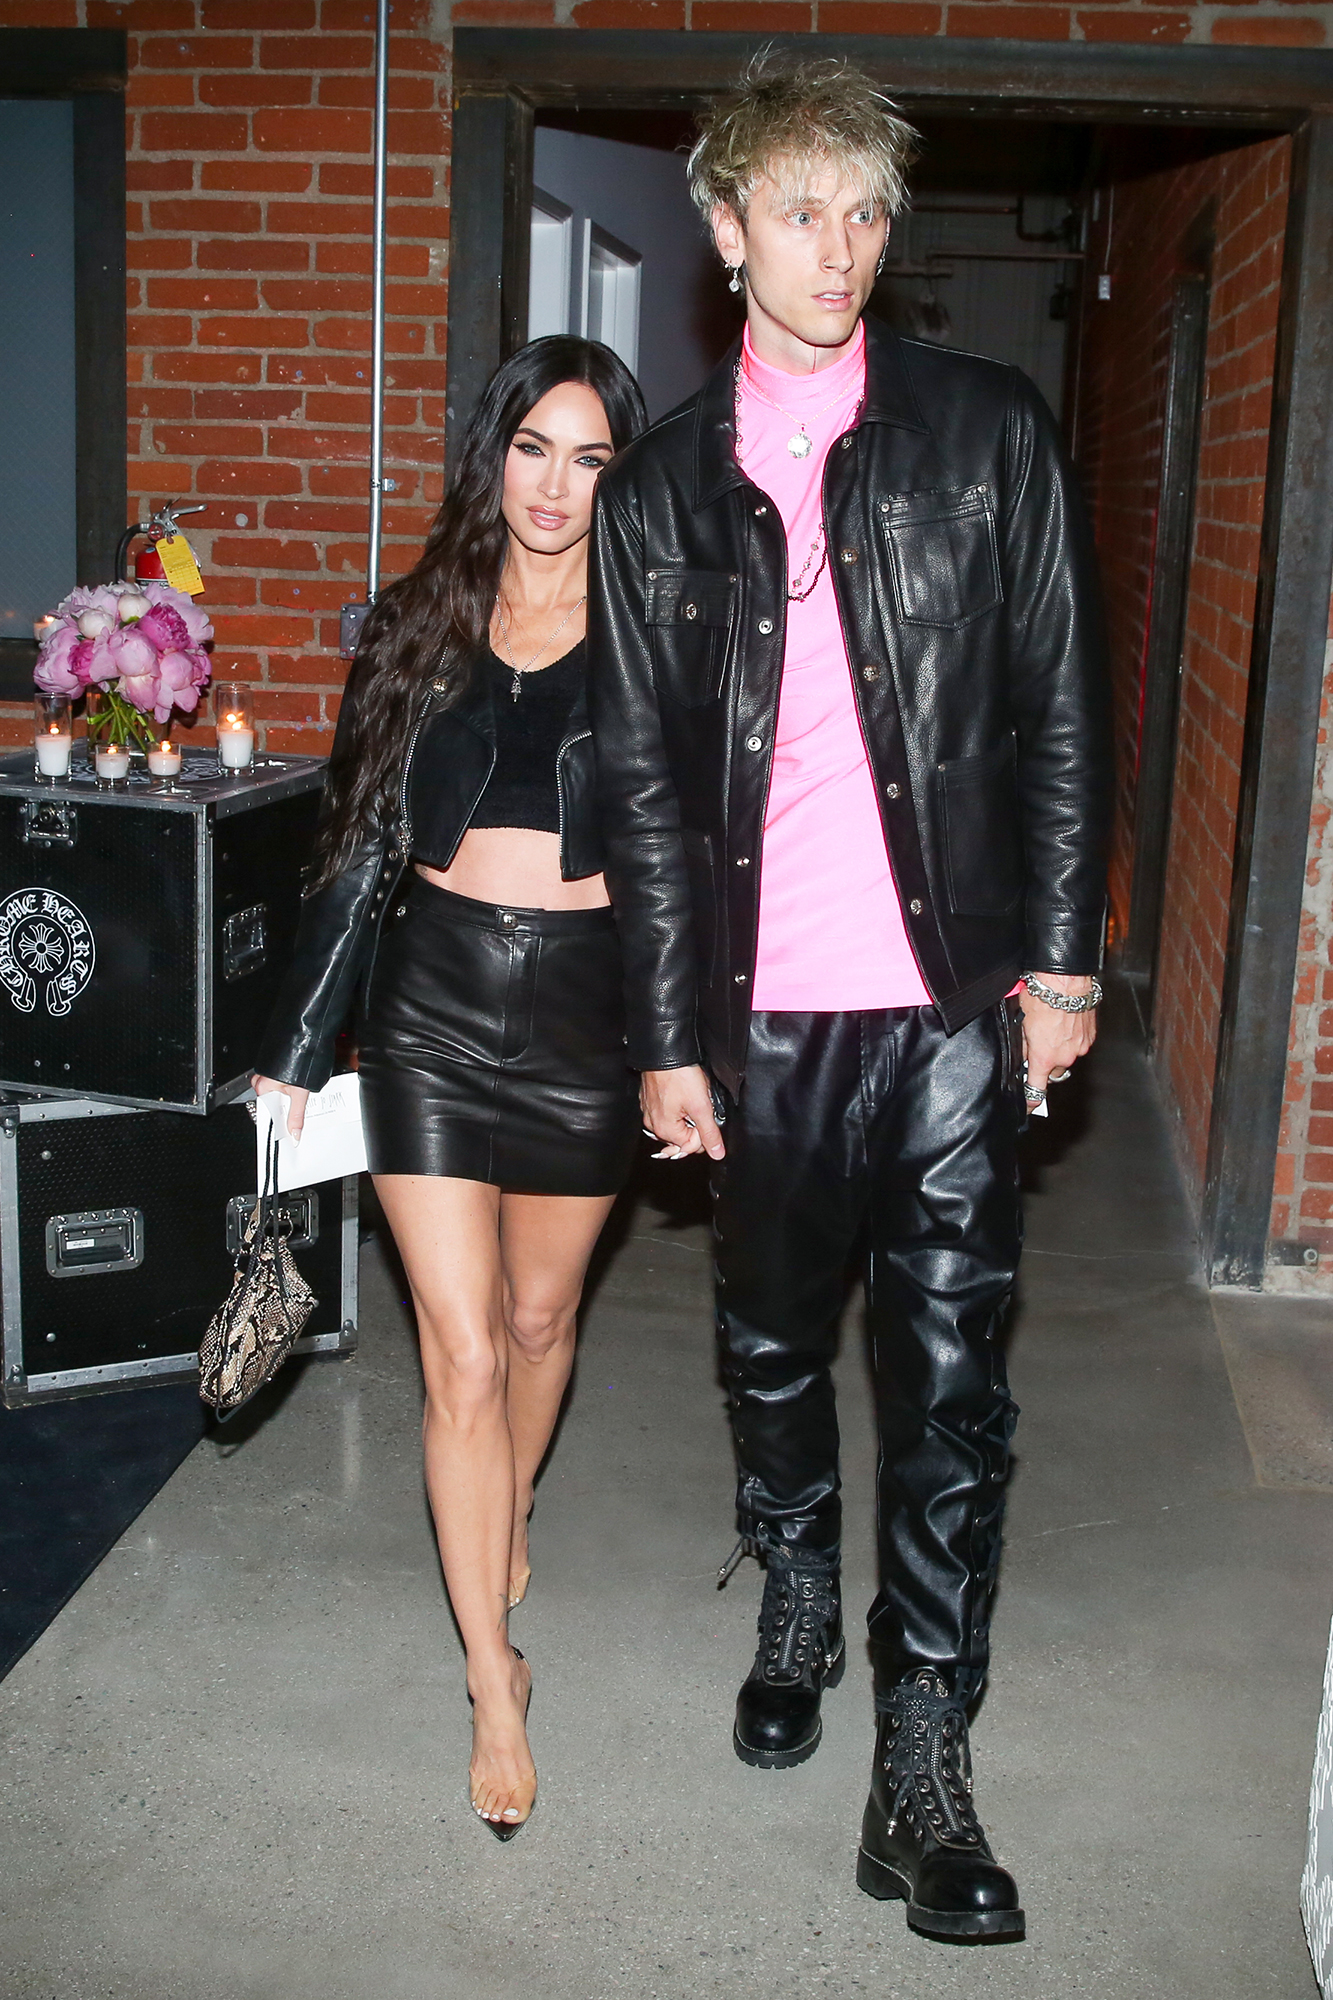 Megan Fox and Machine Gun Kelly attend Jesse Jo Host's Private Dinner Party to Celebrate Launch of her Sugar Jones Collection for Chrome Hearts in Los Angeles on June 10, 2021